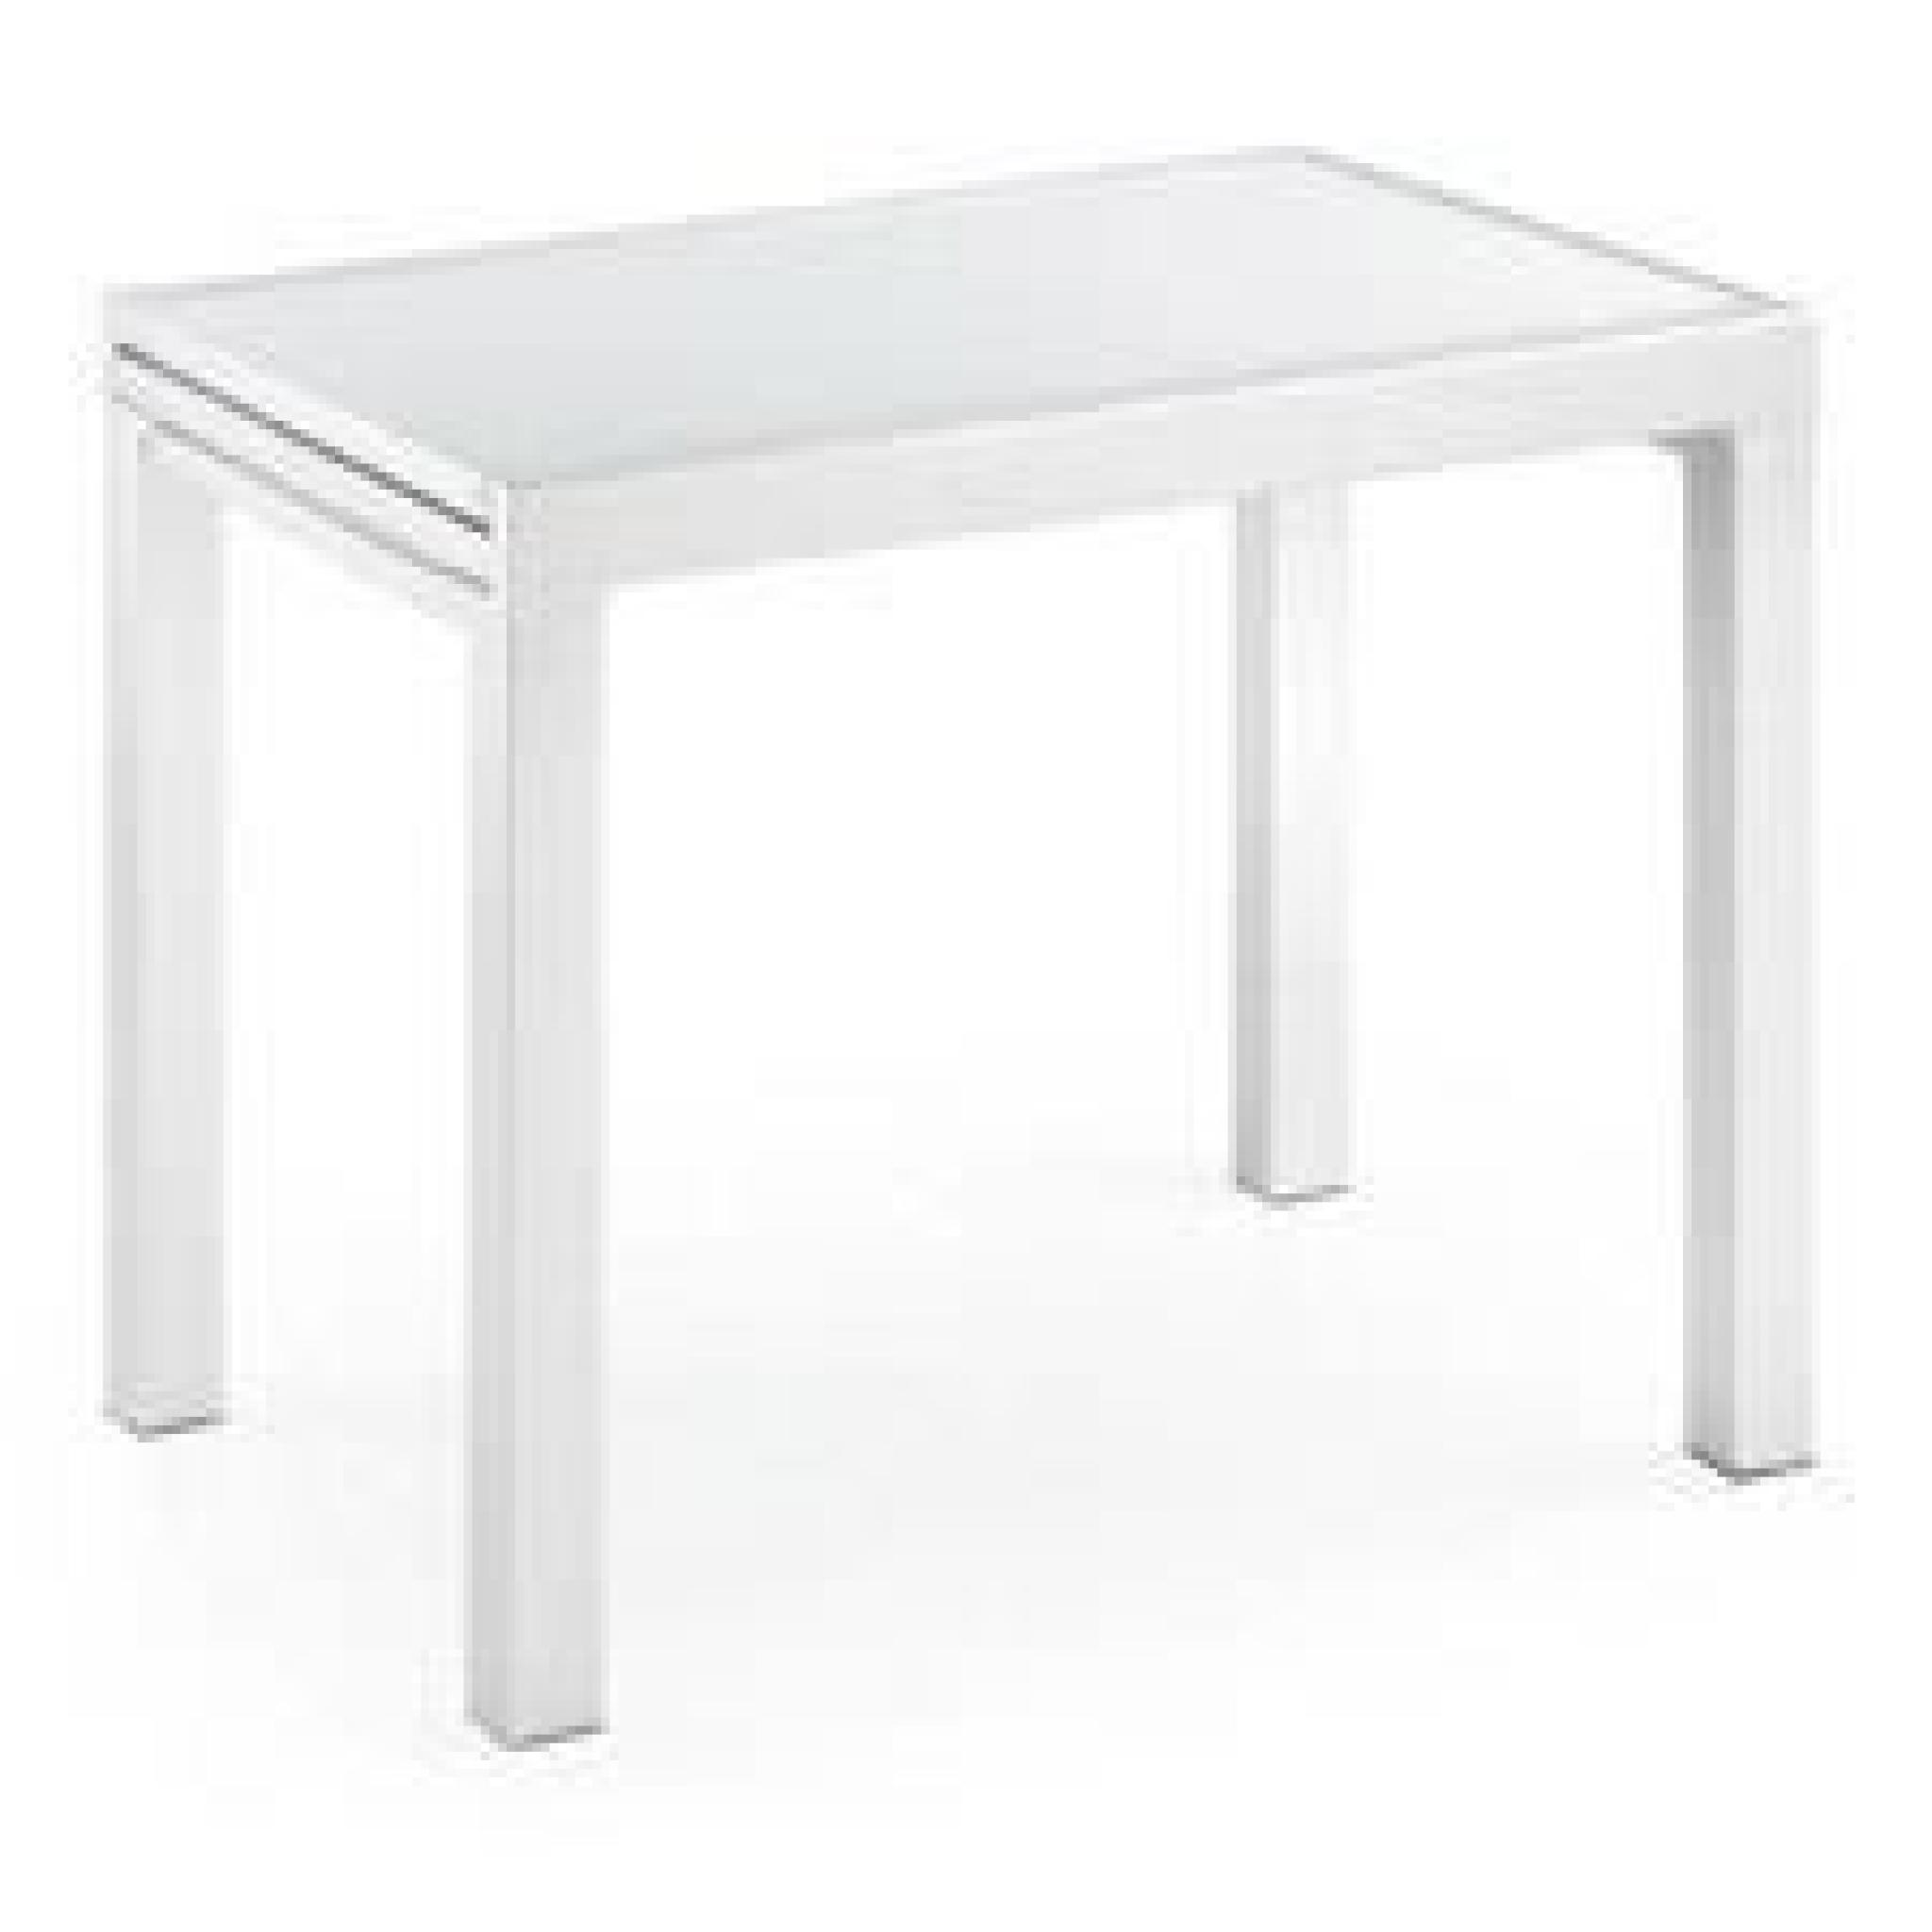 CmBlanc Norfolk 180 Table Extensible 90 eIYH2WDbE9